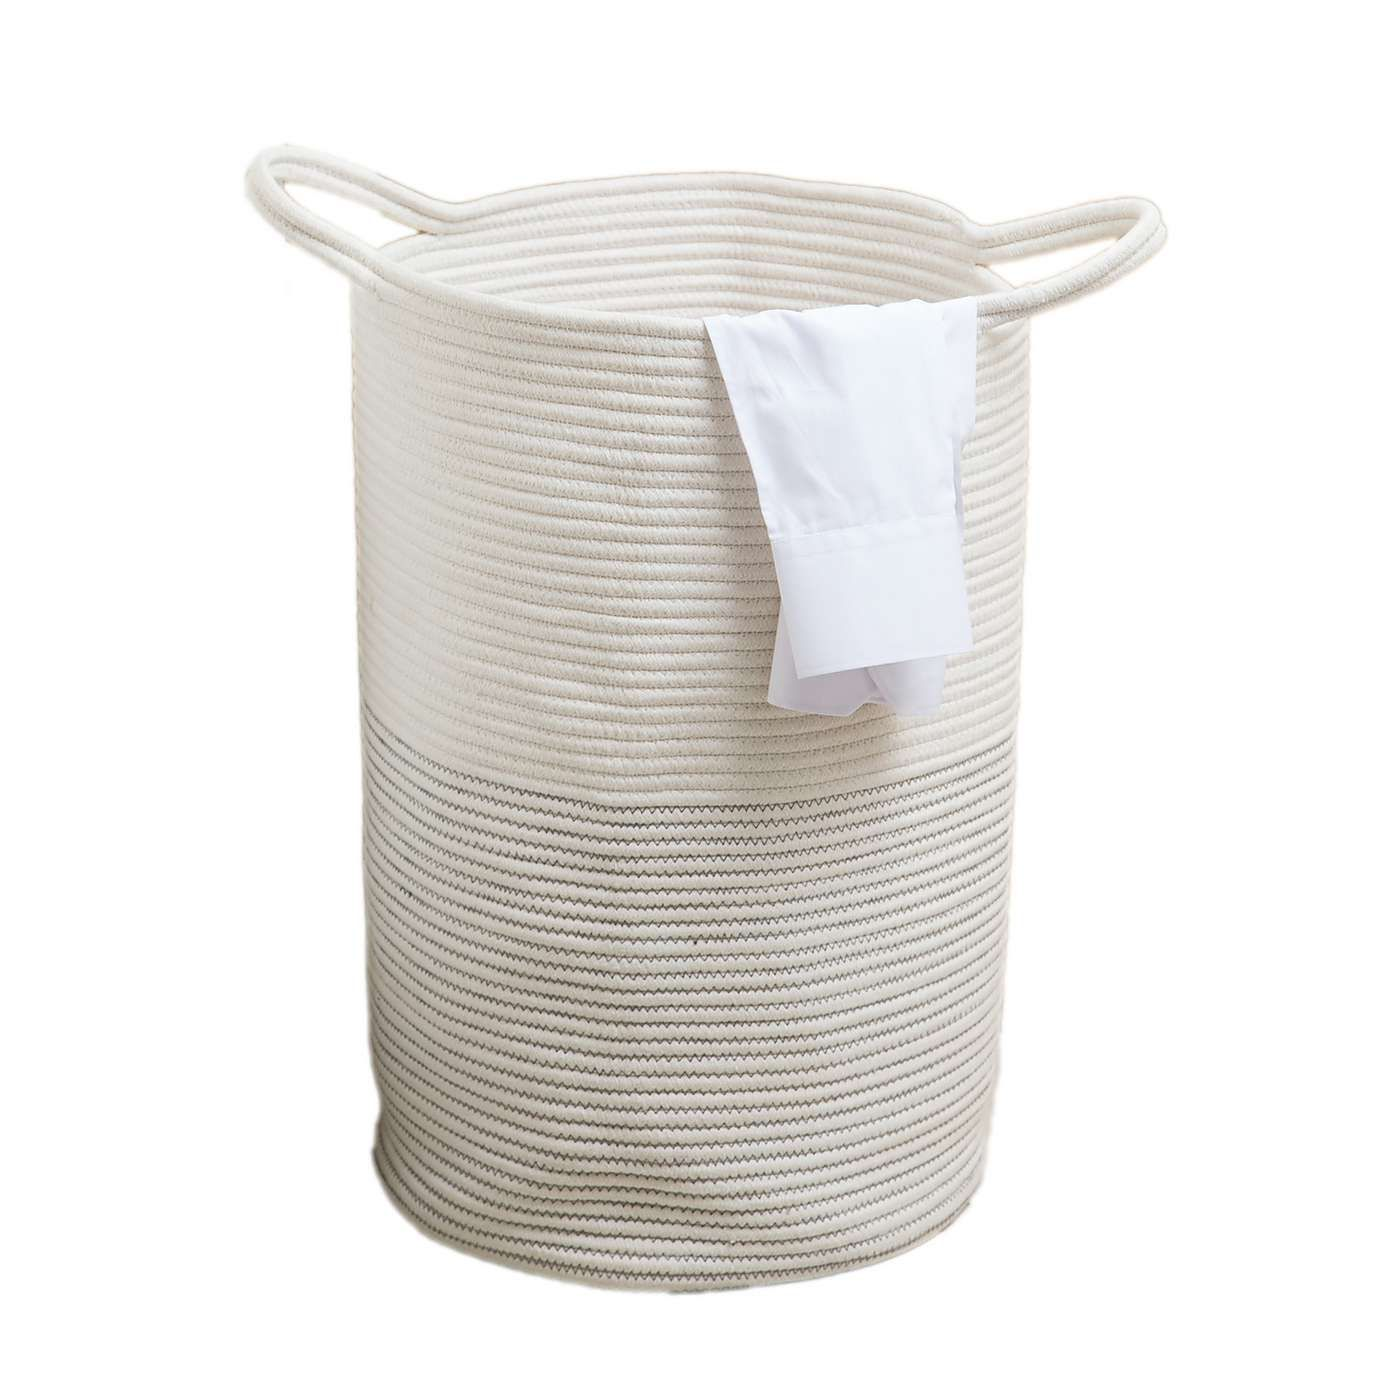 Laundry Bags With Handles Dunelm Rope White Cotton Large Laundry Bag  Laundry White Laundry